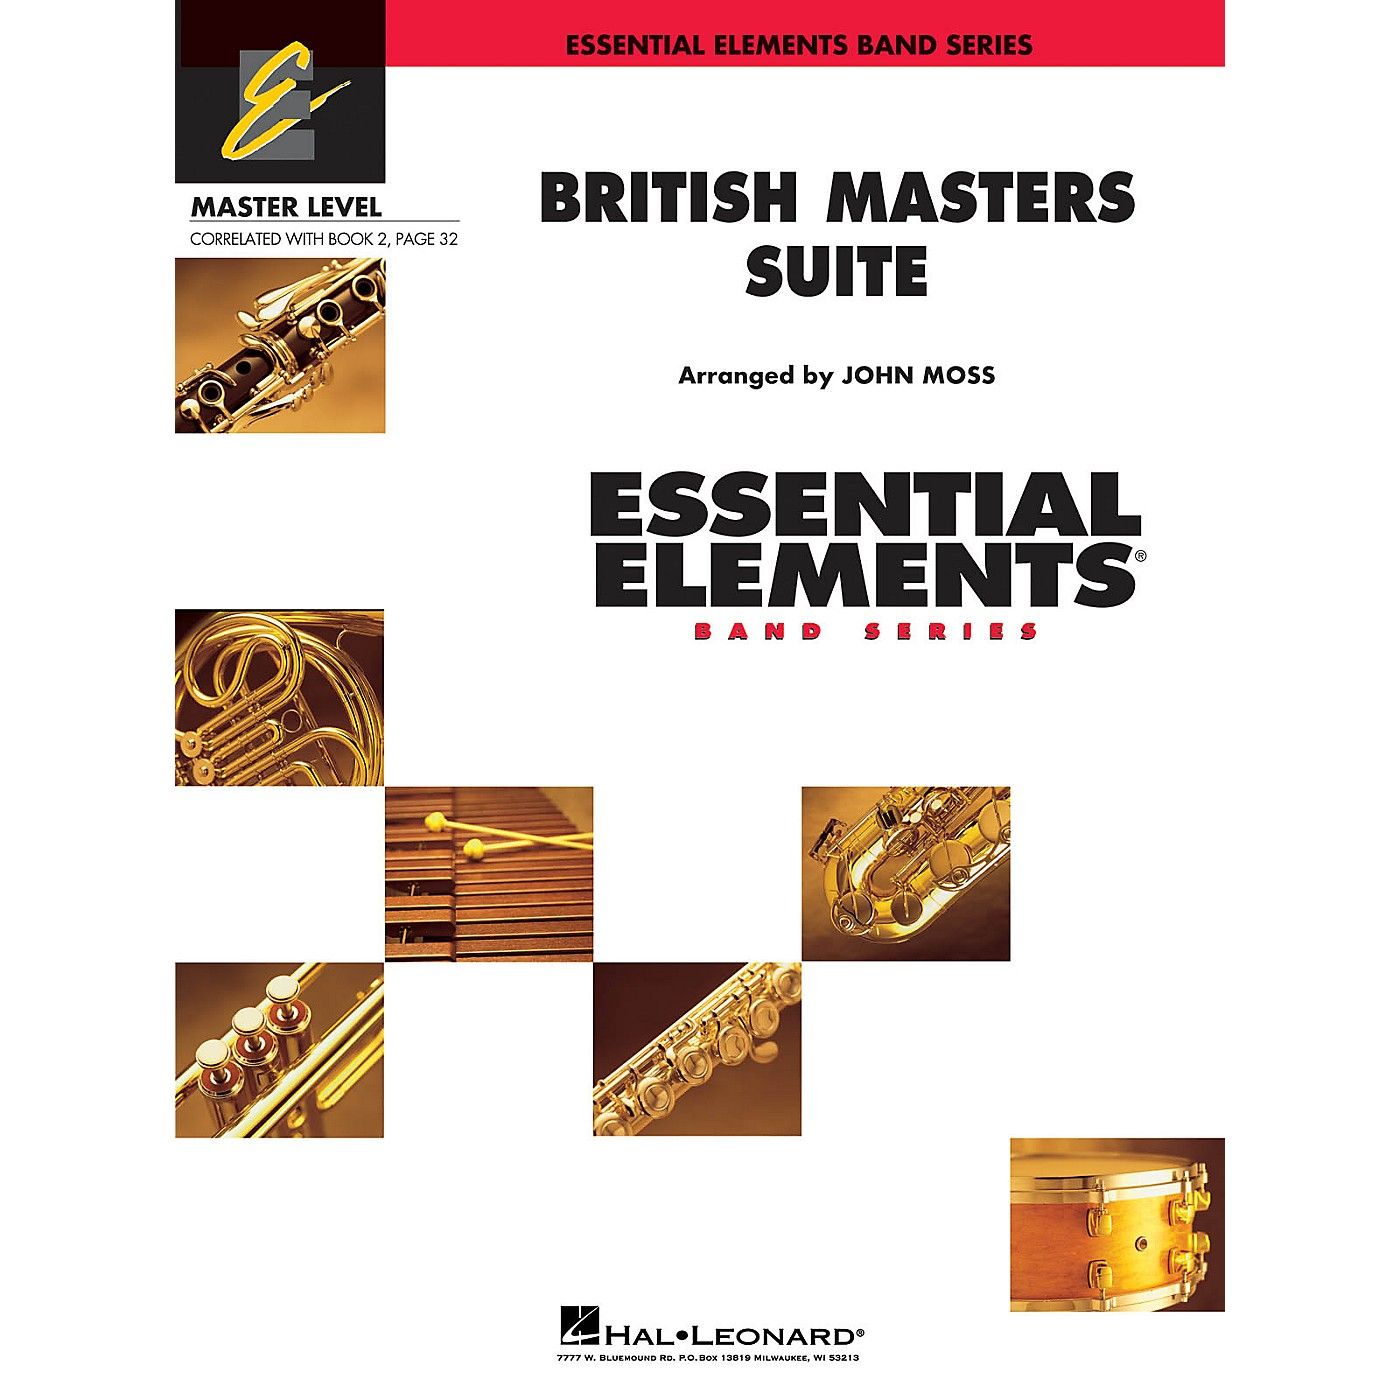 Hal Leonard British Masters Suite (Includes Full Performance CD) Concert Band Level 2 Arranged by John Moss thumbnail